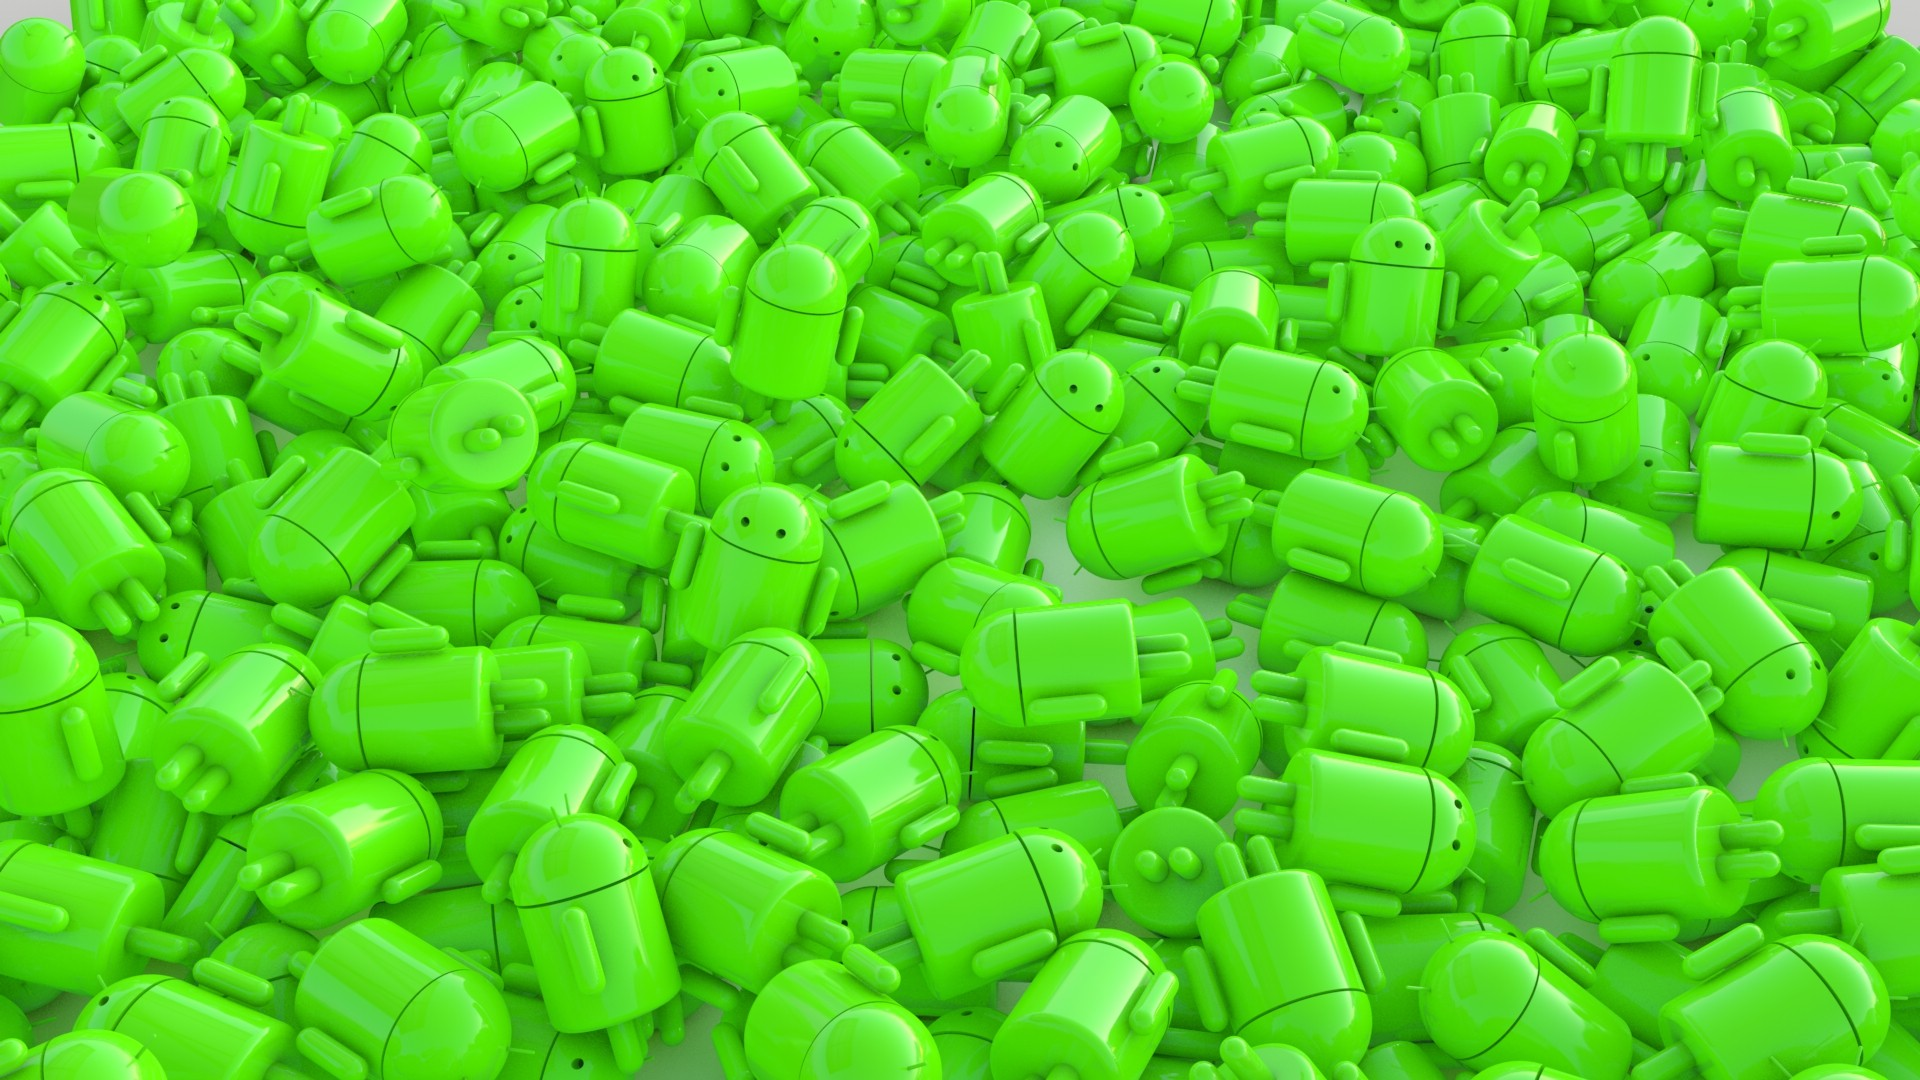 Android Green Robot Wallpaper 1920x1080 112657